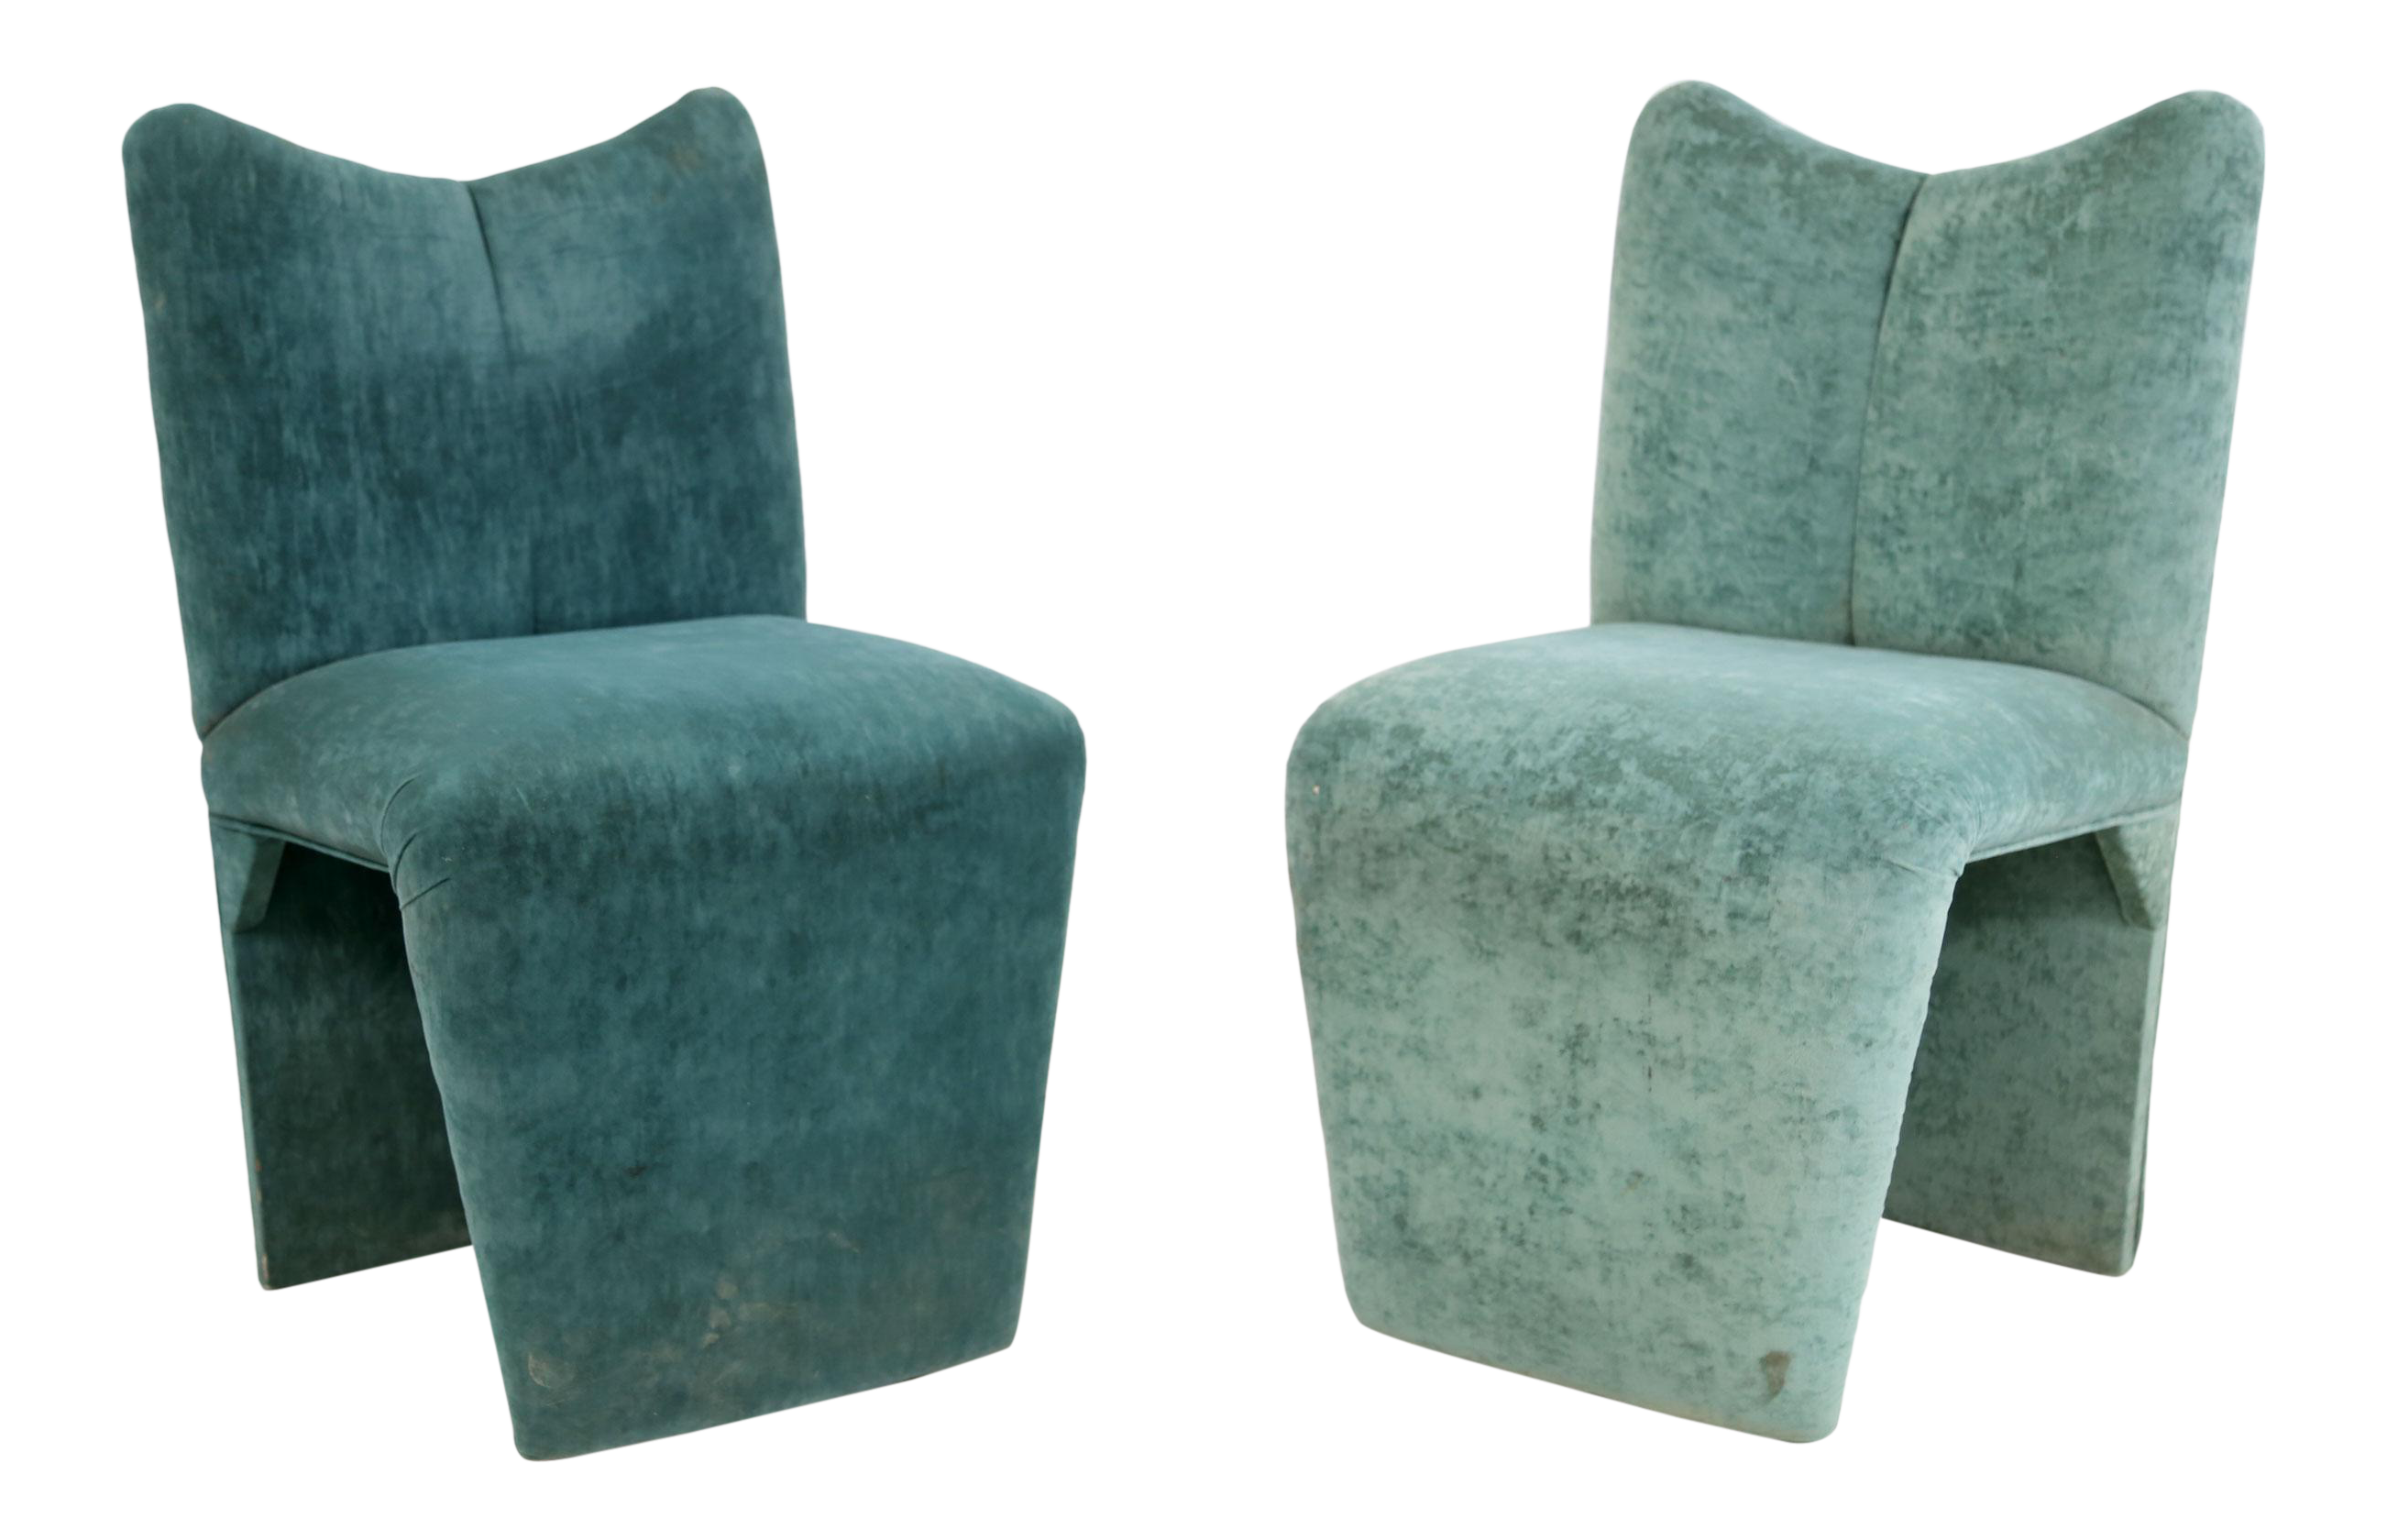 Postmodern Memphis Style Upholstered Chairs Turquoise Green, 1990s   A Pair